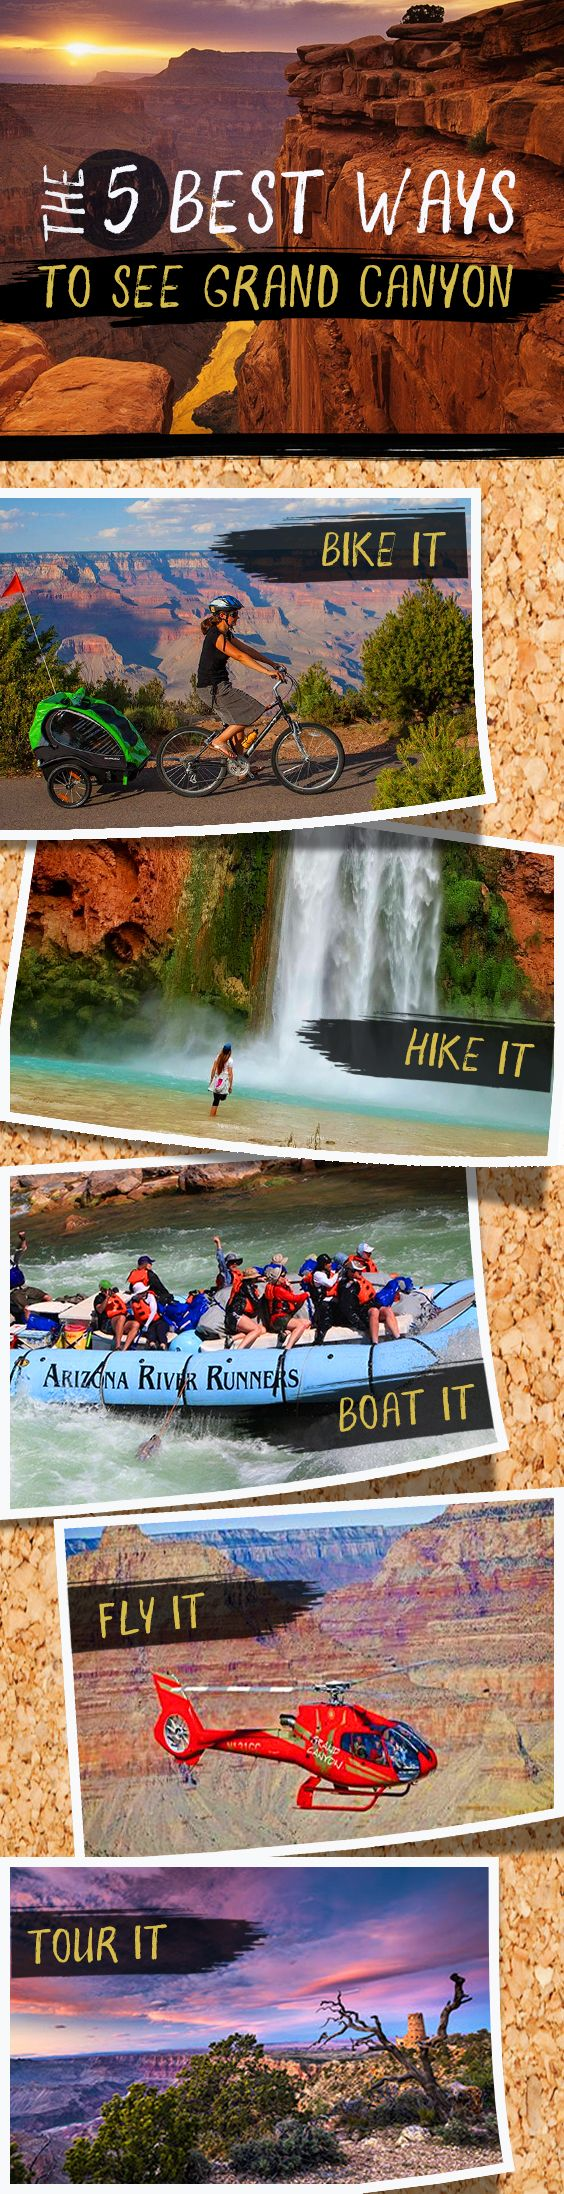 We cover the pros and cons, prices and personally try and review each of our 5 favorite ways to see Grand Canyon. Bike grand canyon, hike grand canyon, boat grand canyon, tour grand canyon or fly Grand Canyon.